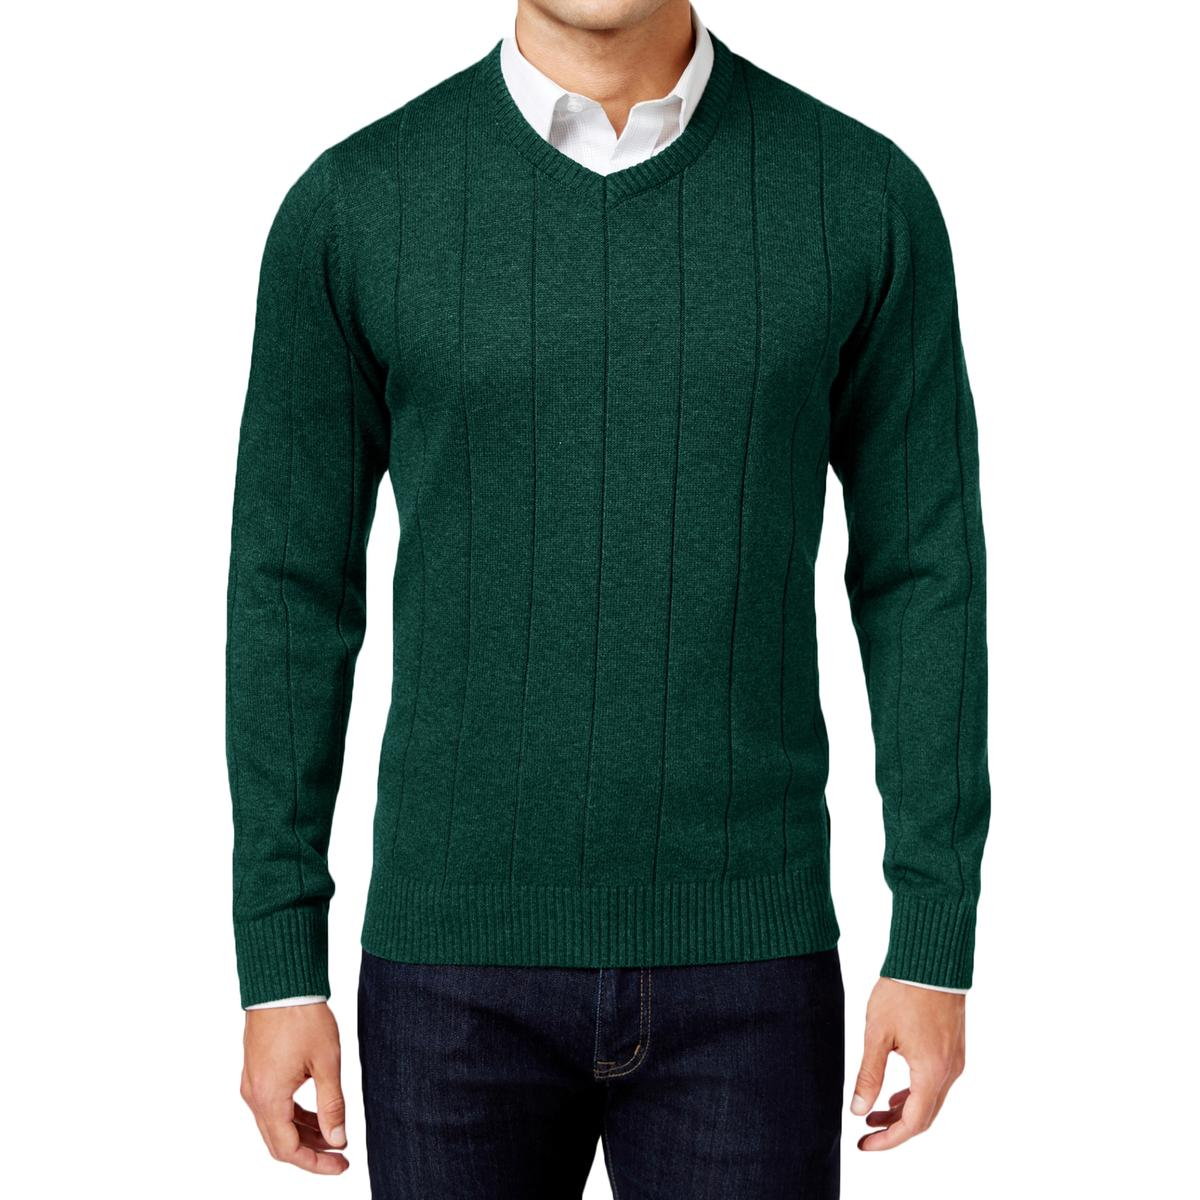 fcb69a31a32f Details about John Ashford Men s Striped-Texture Ribbed Trim V-Neck  Pullover Sweater BHFO